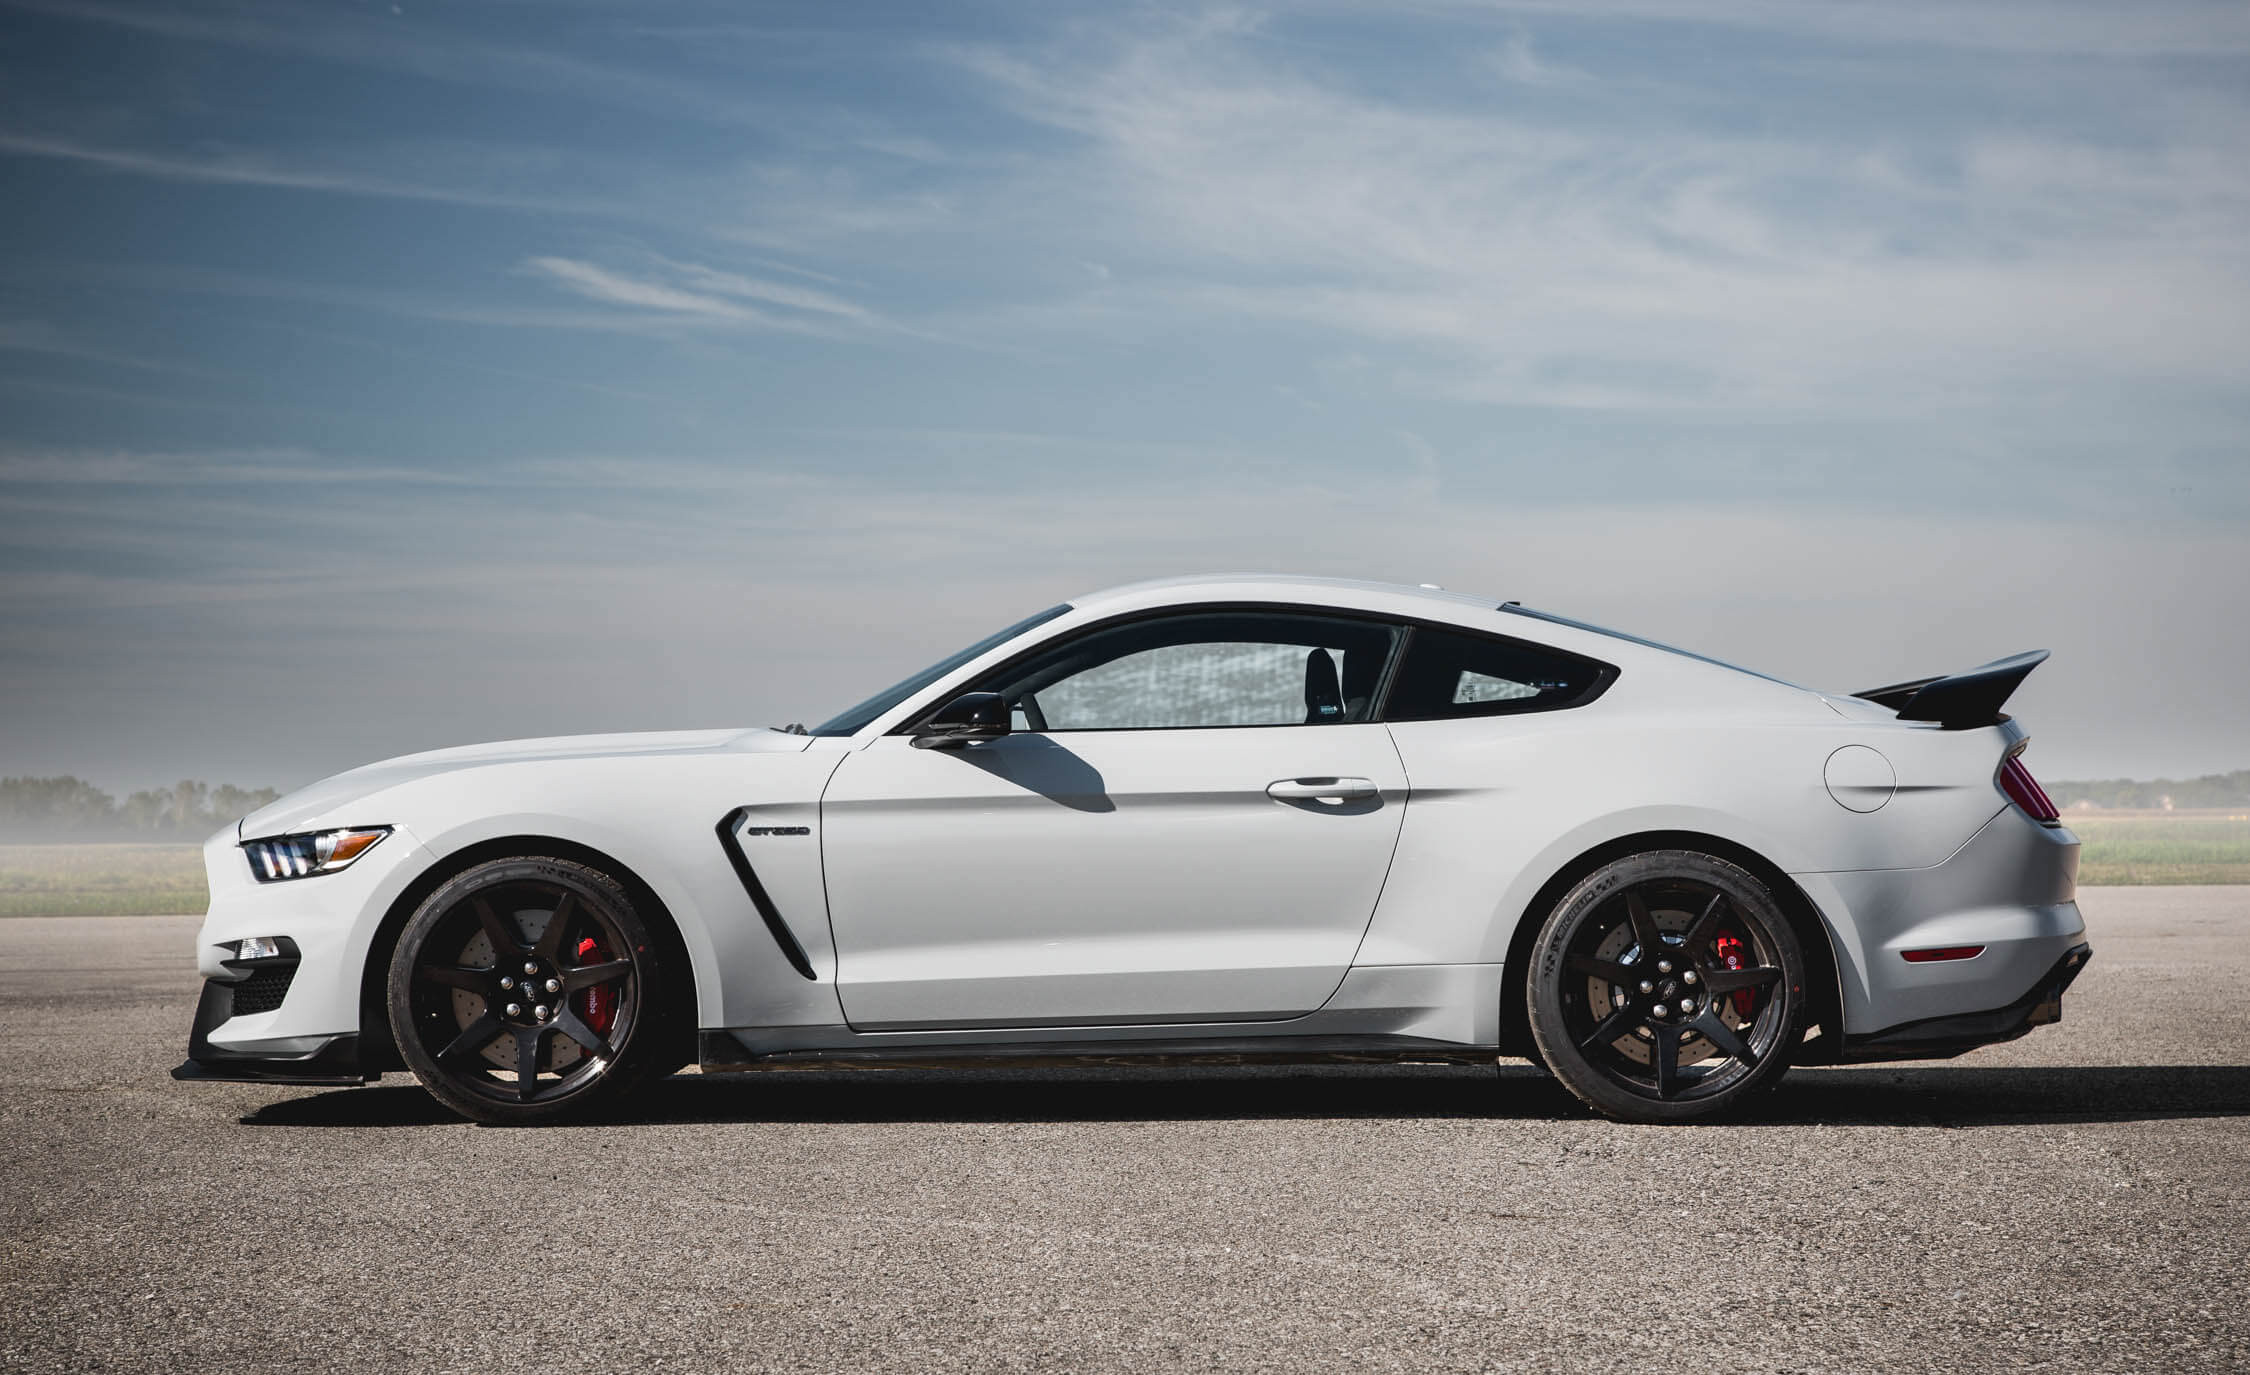 2018 Shelby Gt350 Wallpaper (74+ images)